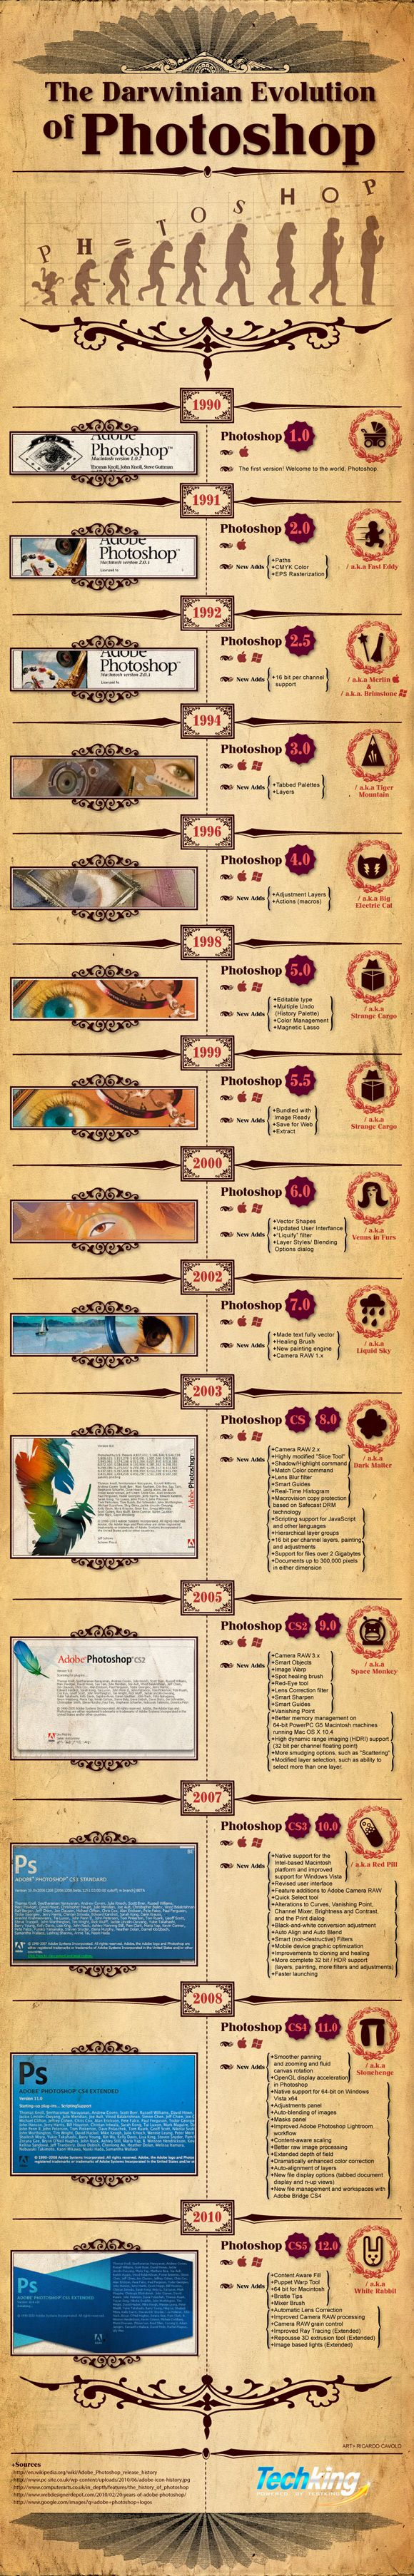 The-Darwinian-Evolution-Of-Photoshop-infographic  Find always more on http://infographicsmania.com